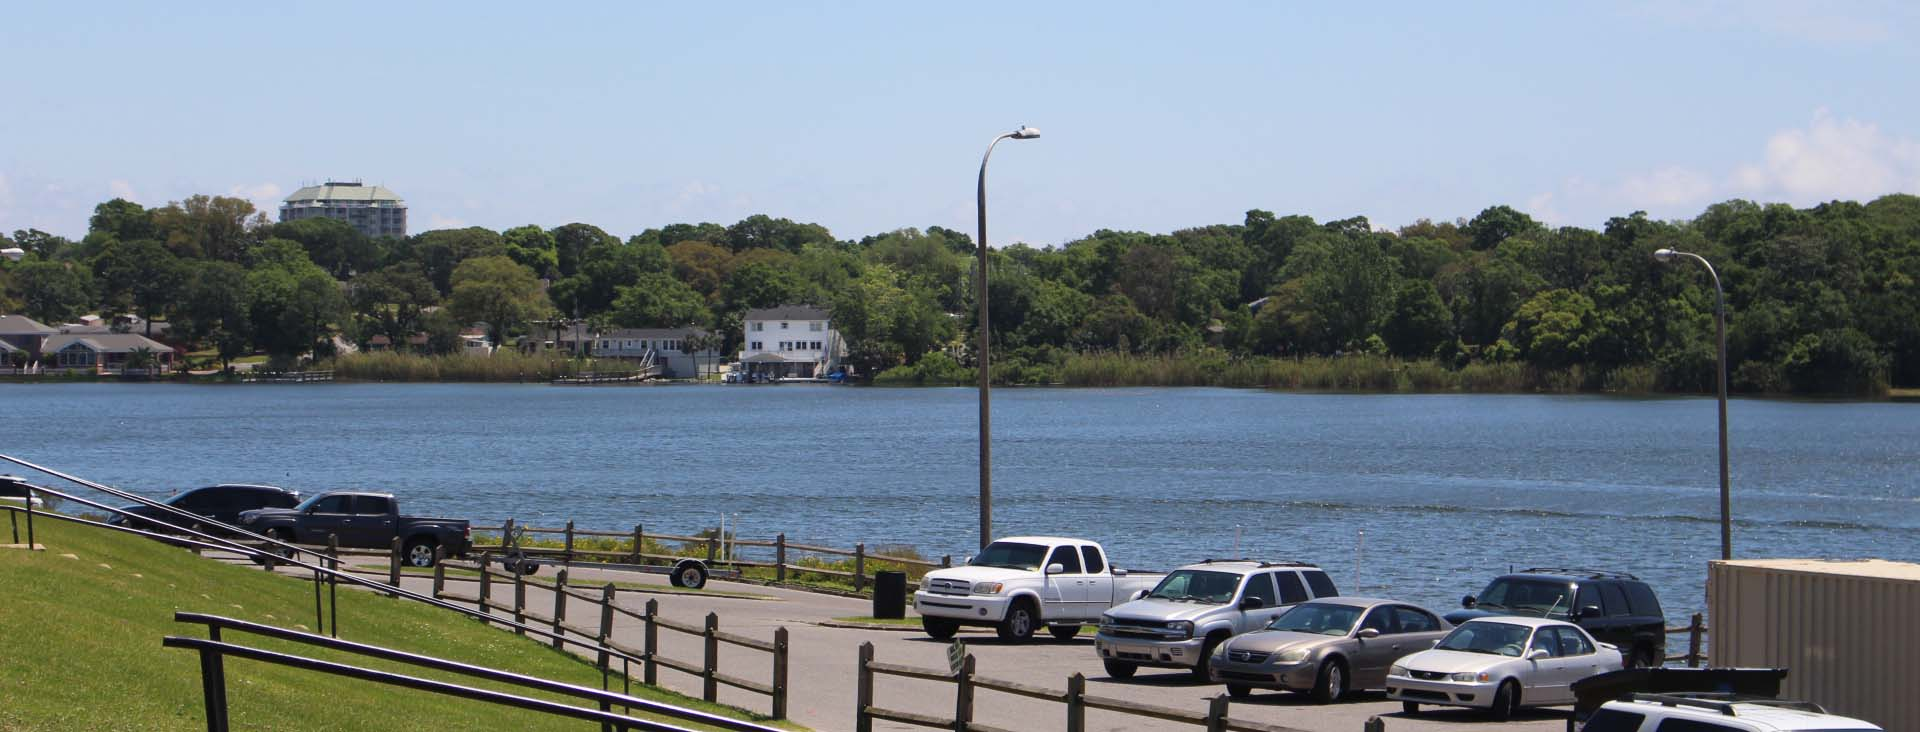 Bayview Boat Launch